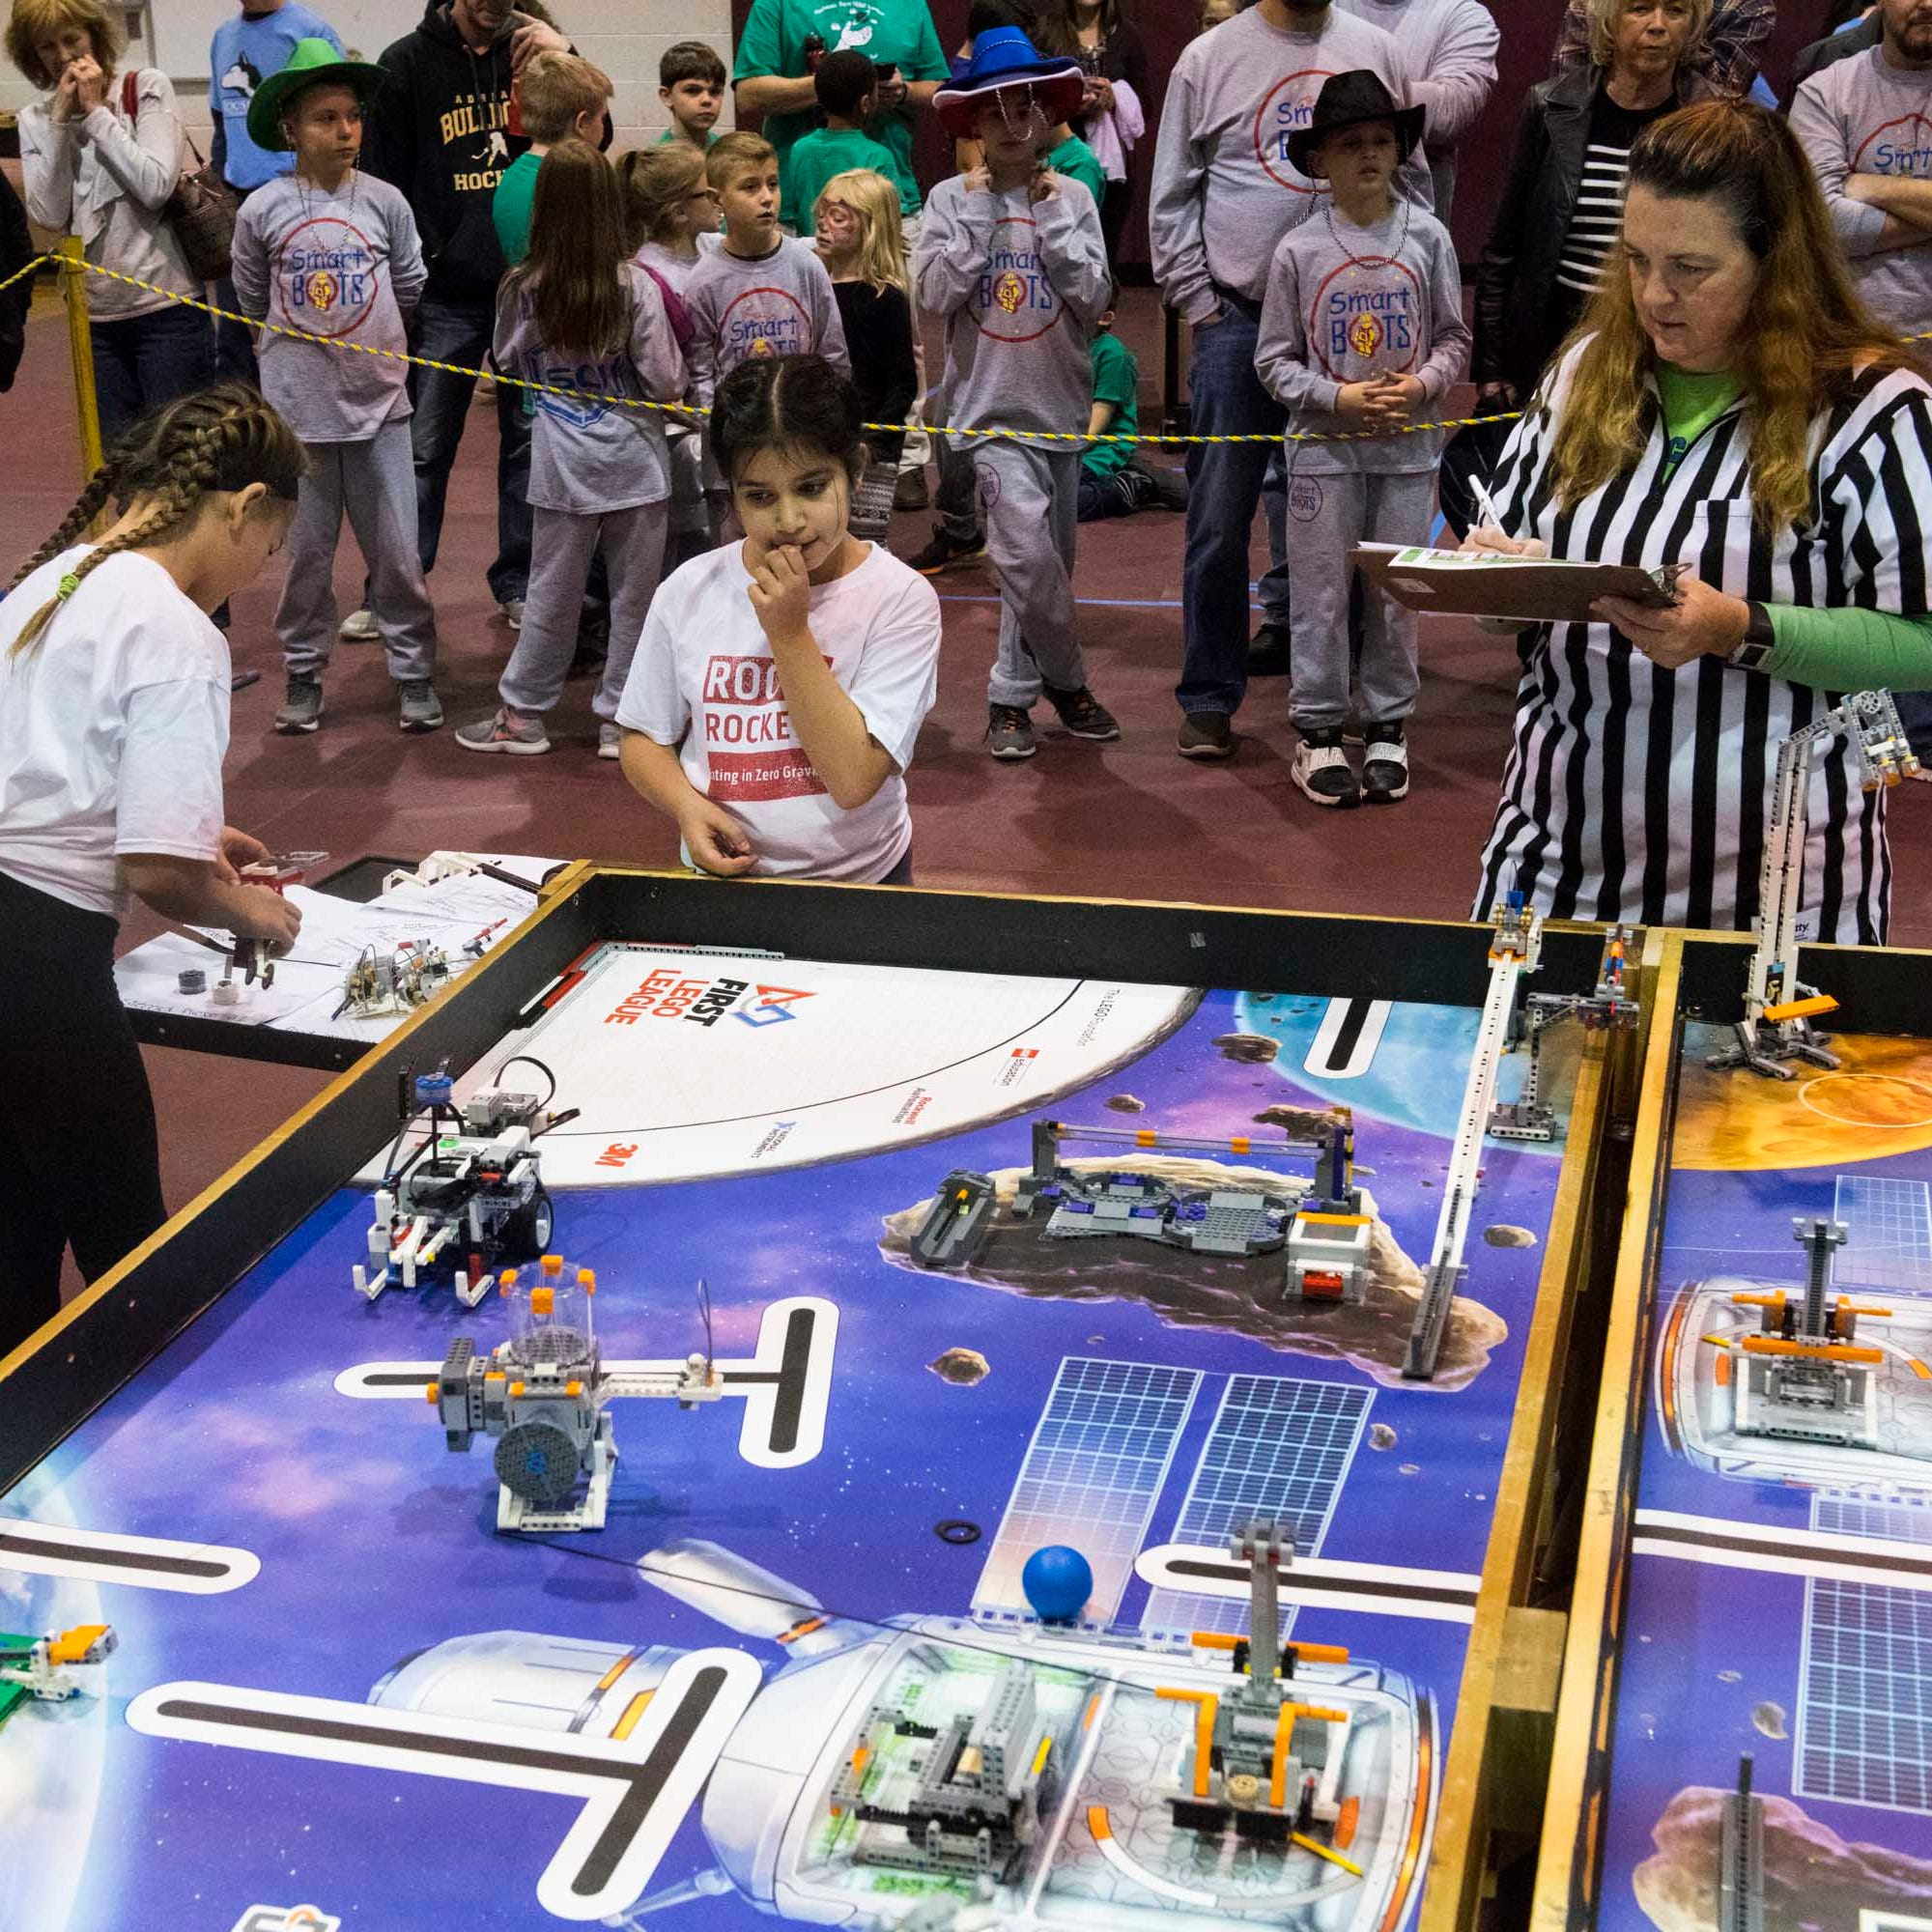 Opinion: Robotics helps kids explore STEM